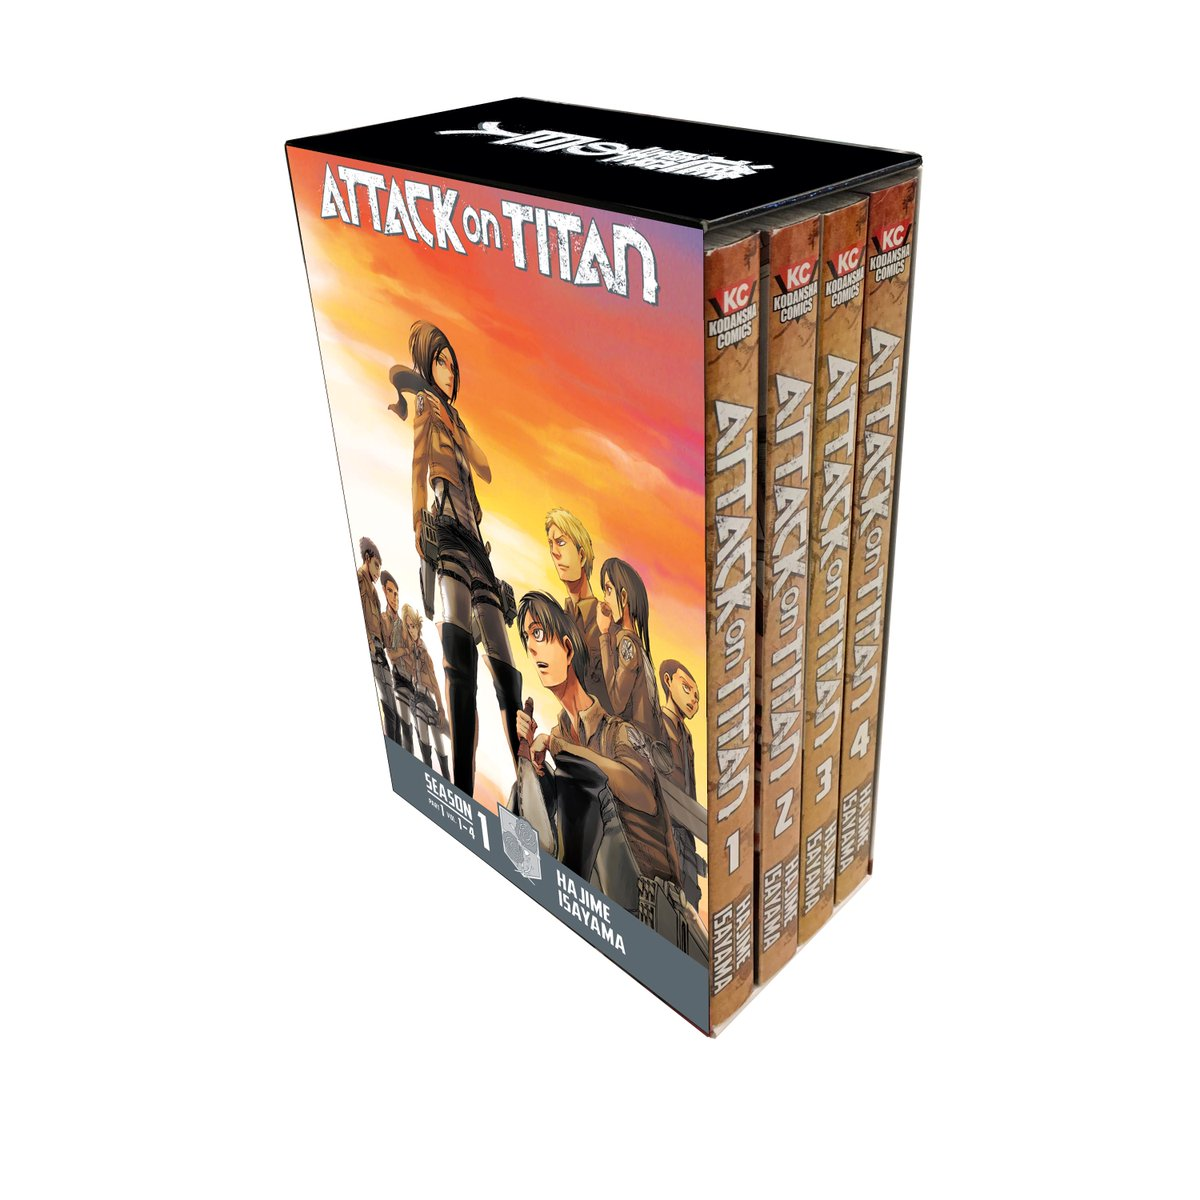 ... ready for the new season with our NEW Attack on Titan Season 1 & 2  manga box sets! https://kodanshacomics.com/2018/04/05/attack-on-titan-manga- box-sets/ ...